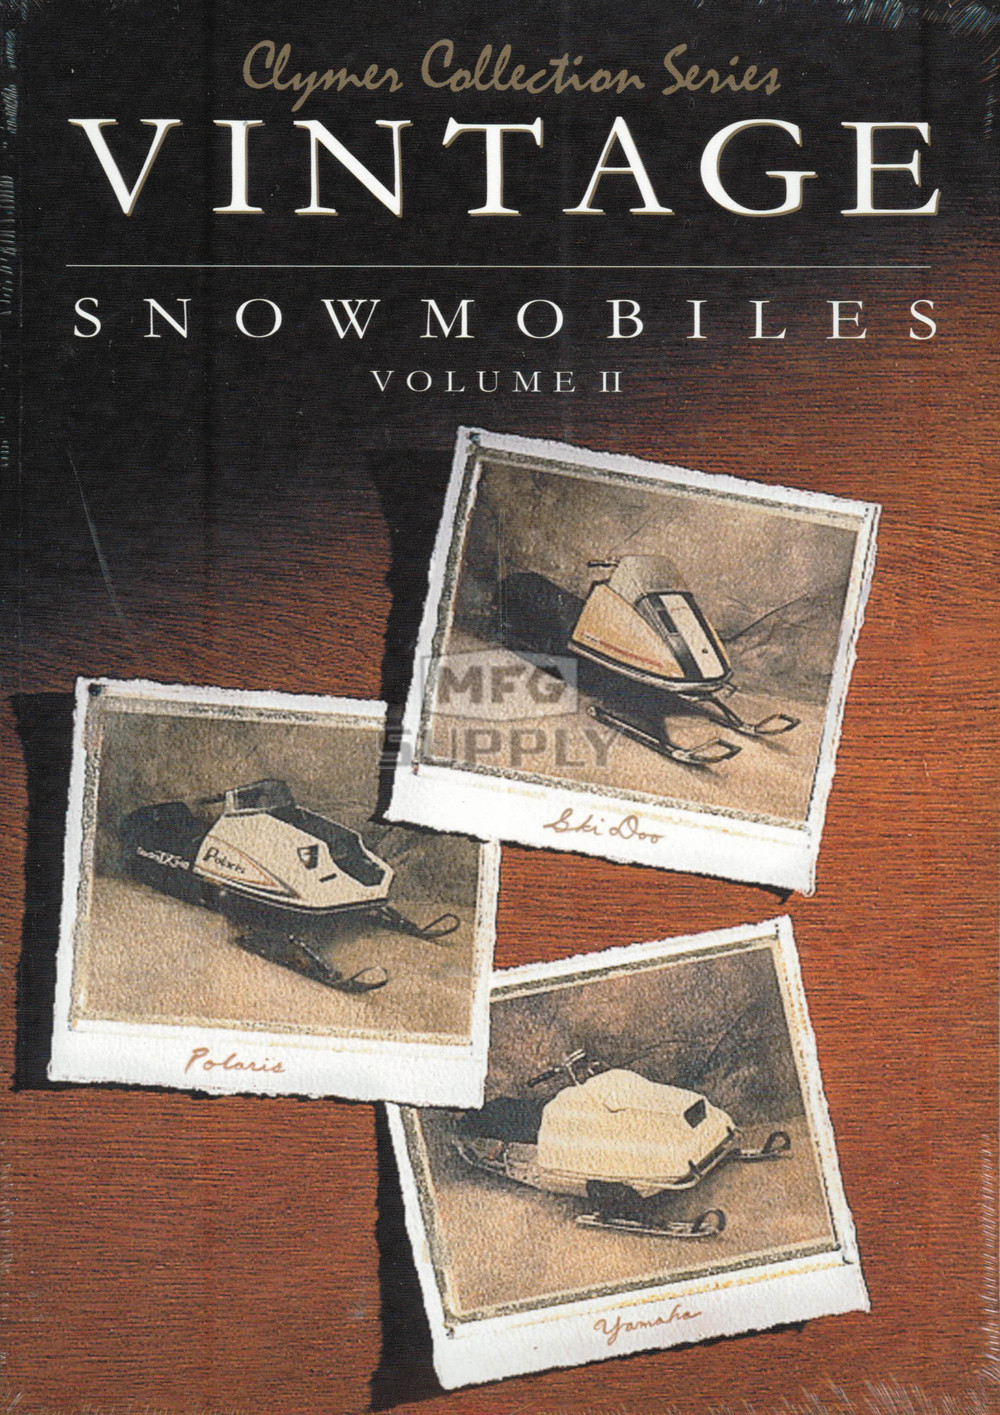 Vintage Snowmobile Repair, Service & Maintenance Manual. Info for 73-79  Polaris, 70-79 Ski-Doo & 75-80 Yamaha Snowmobiles.